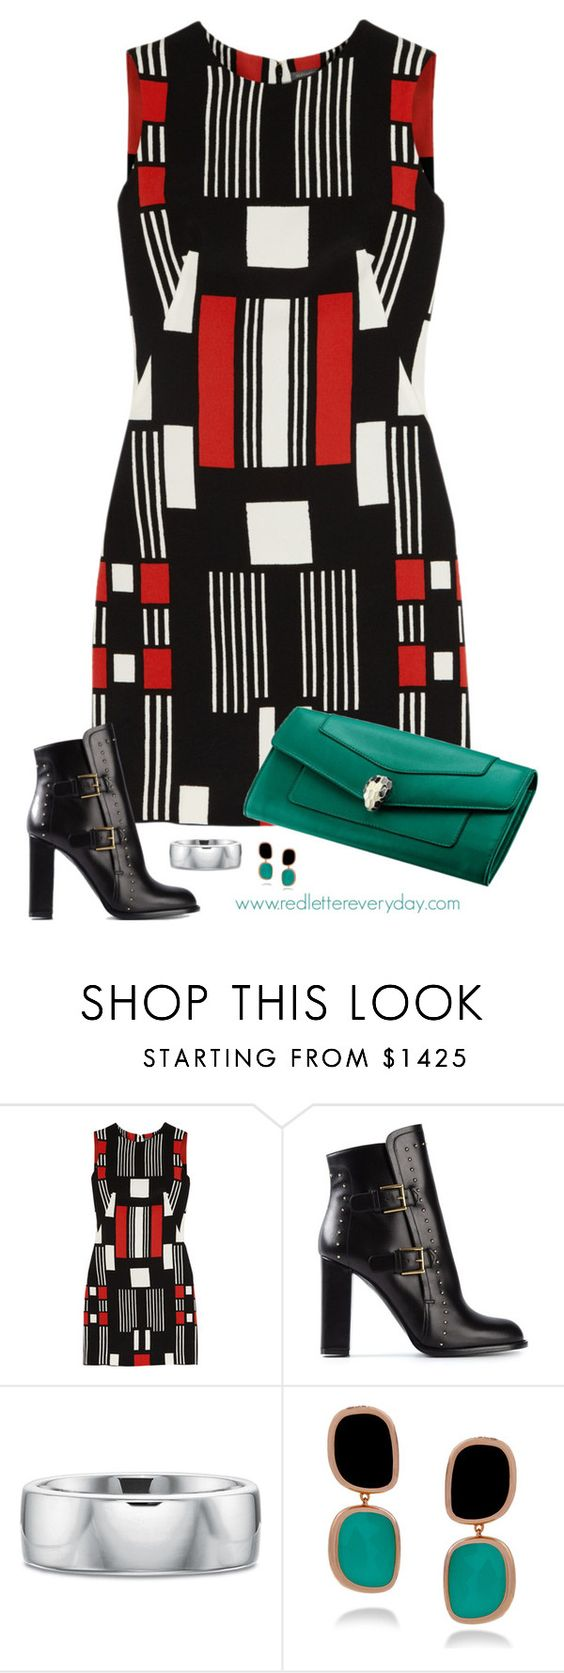 """Geometric Outfit"" by rleveryday ❤ liked on Polyvore featuring Alexander McQueen, Roberto Coin, Bulgari, workoutfit, officeOutfit and professionaloutfit"